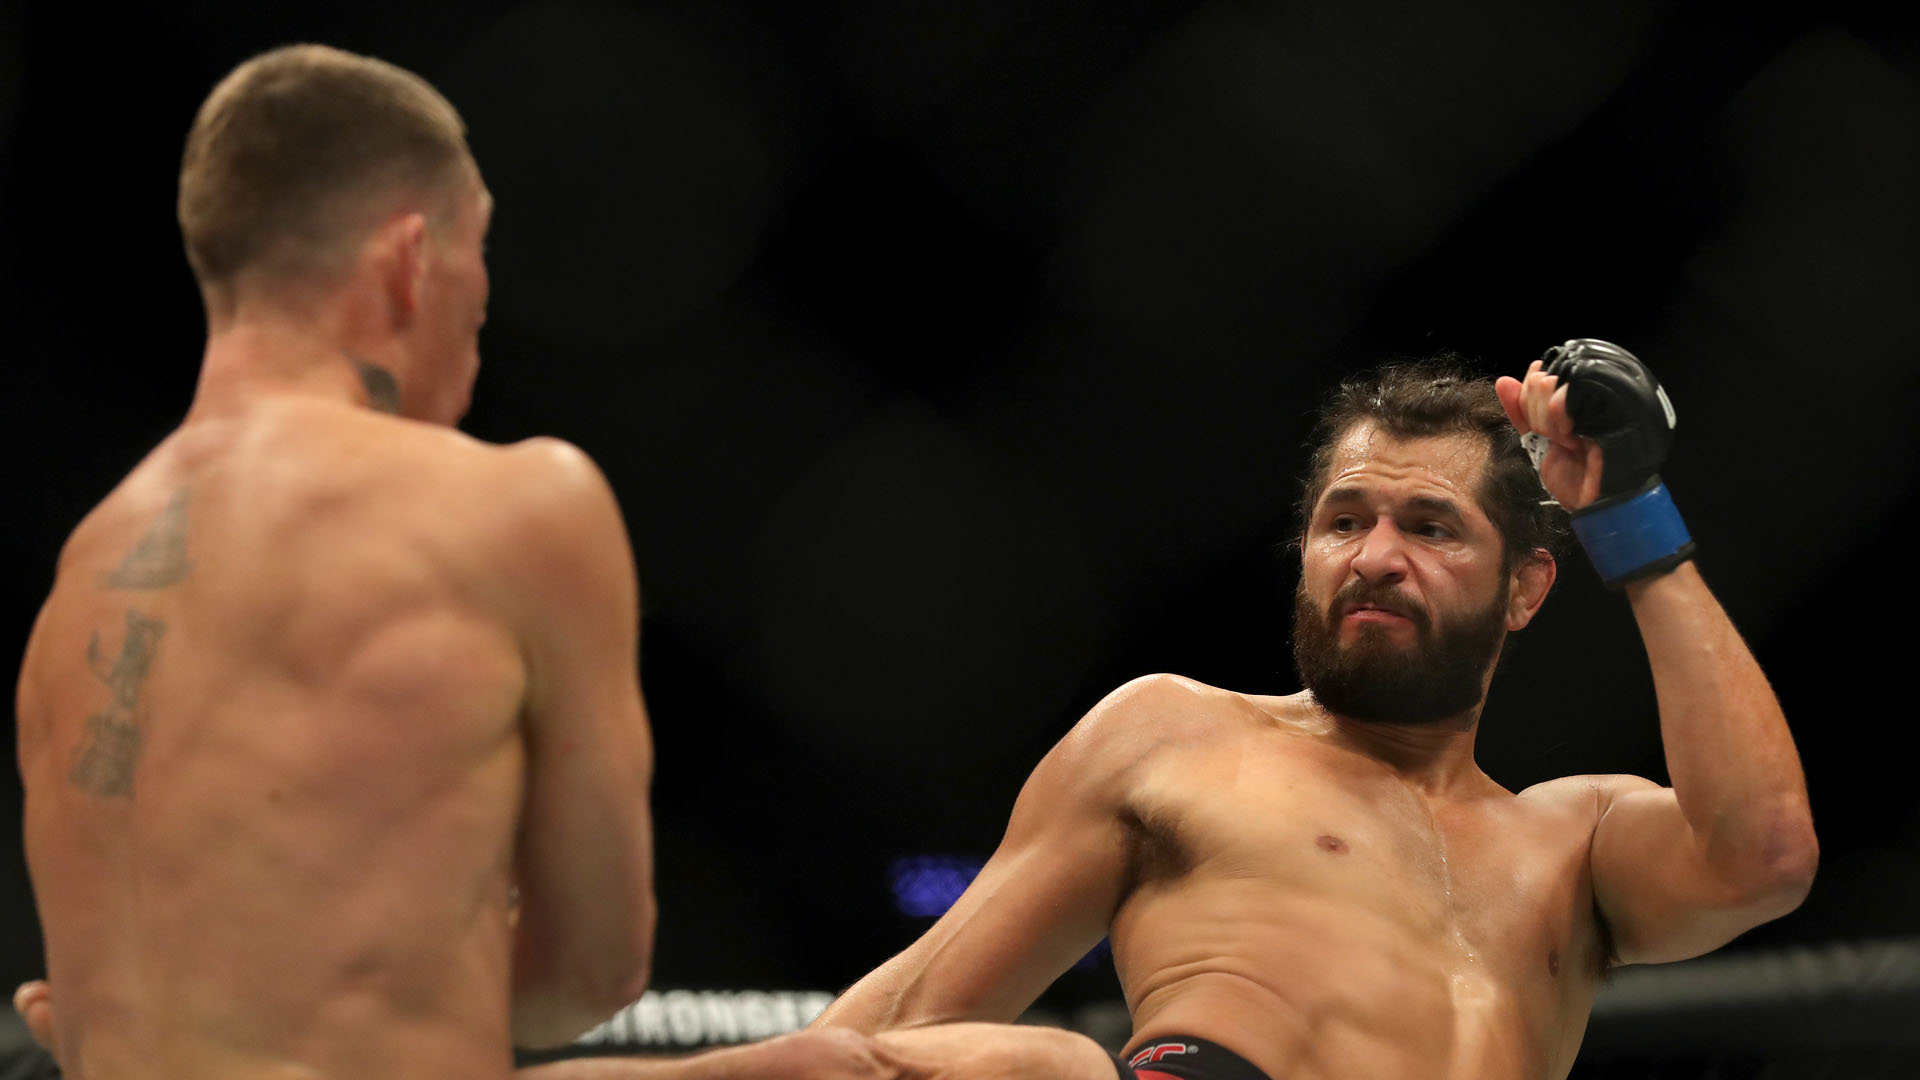 WATCH: Jorge Masvidal in fist fight with Leon Edwards after win over Darren Till